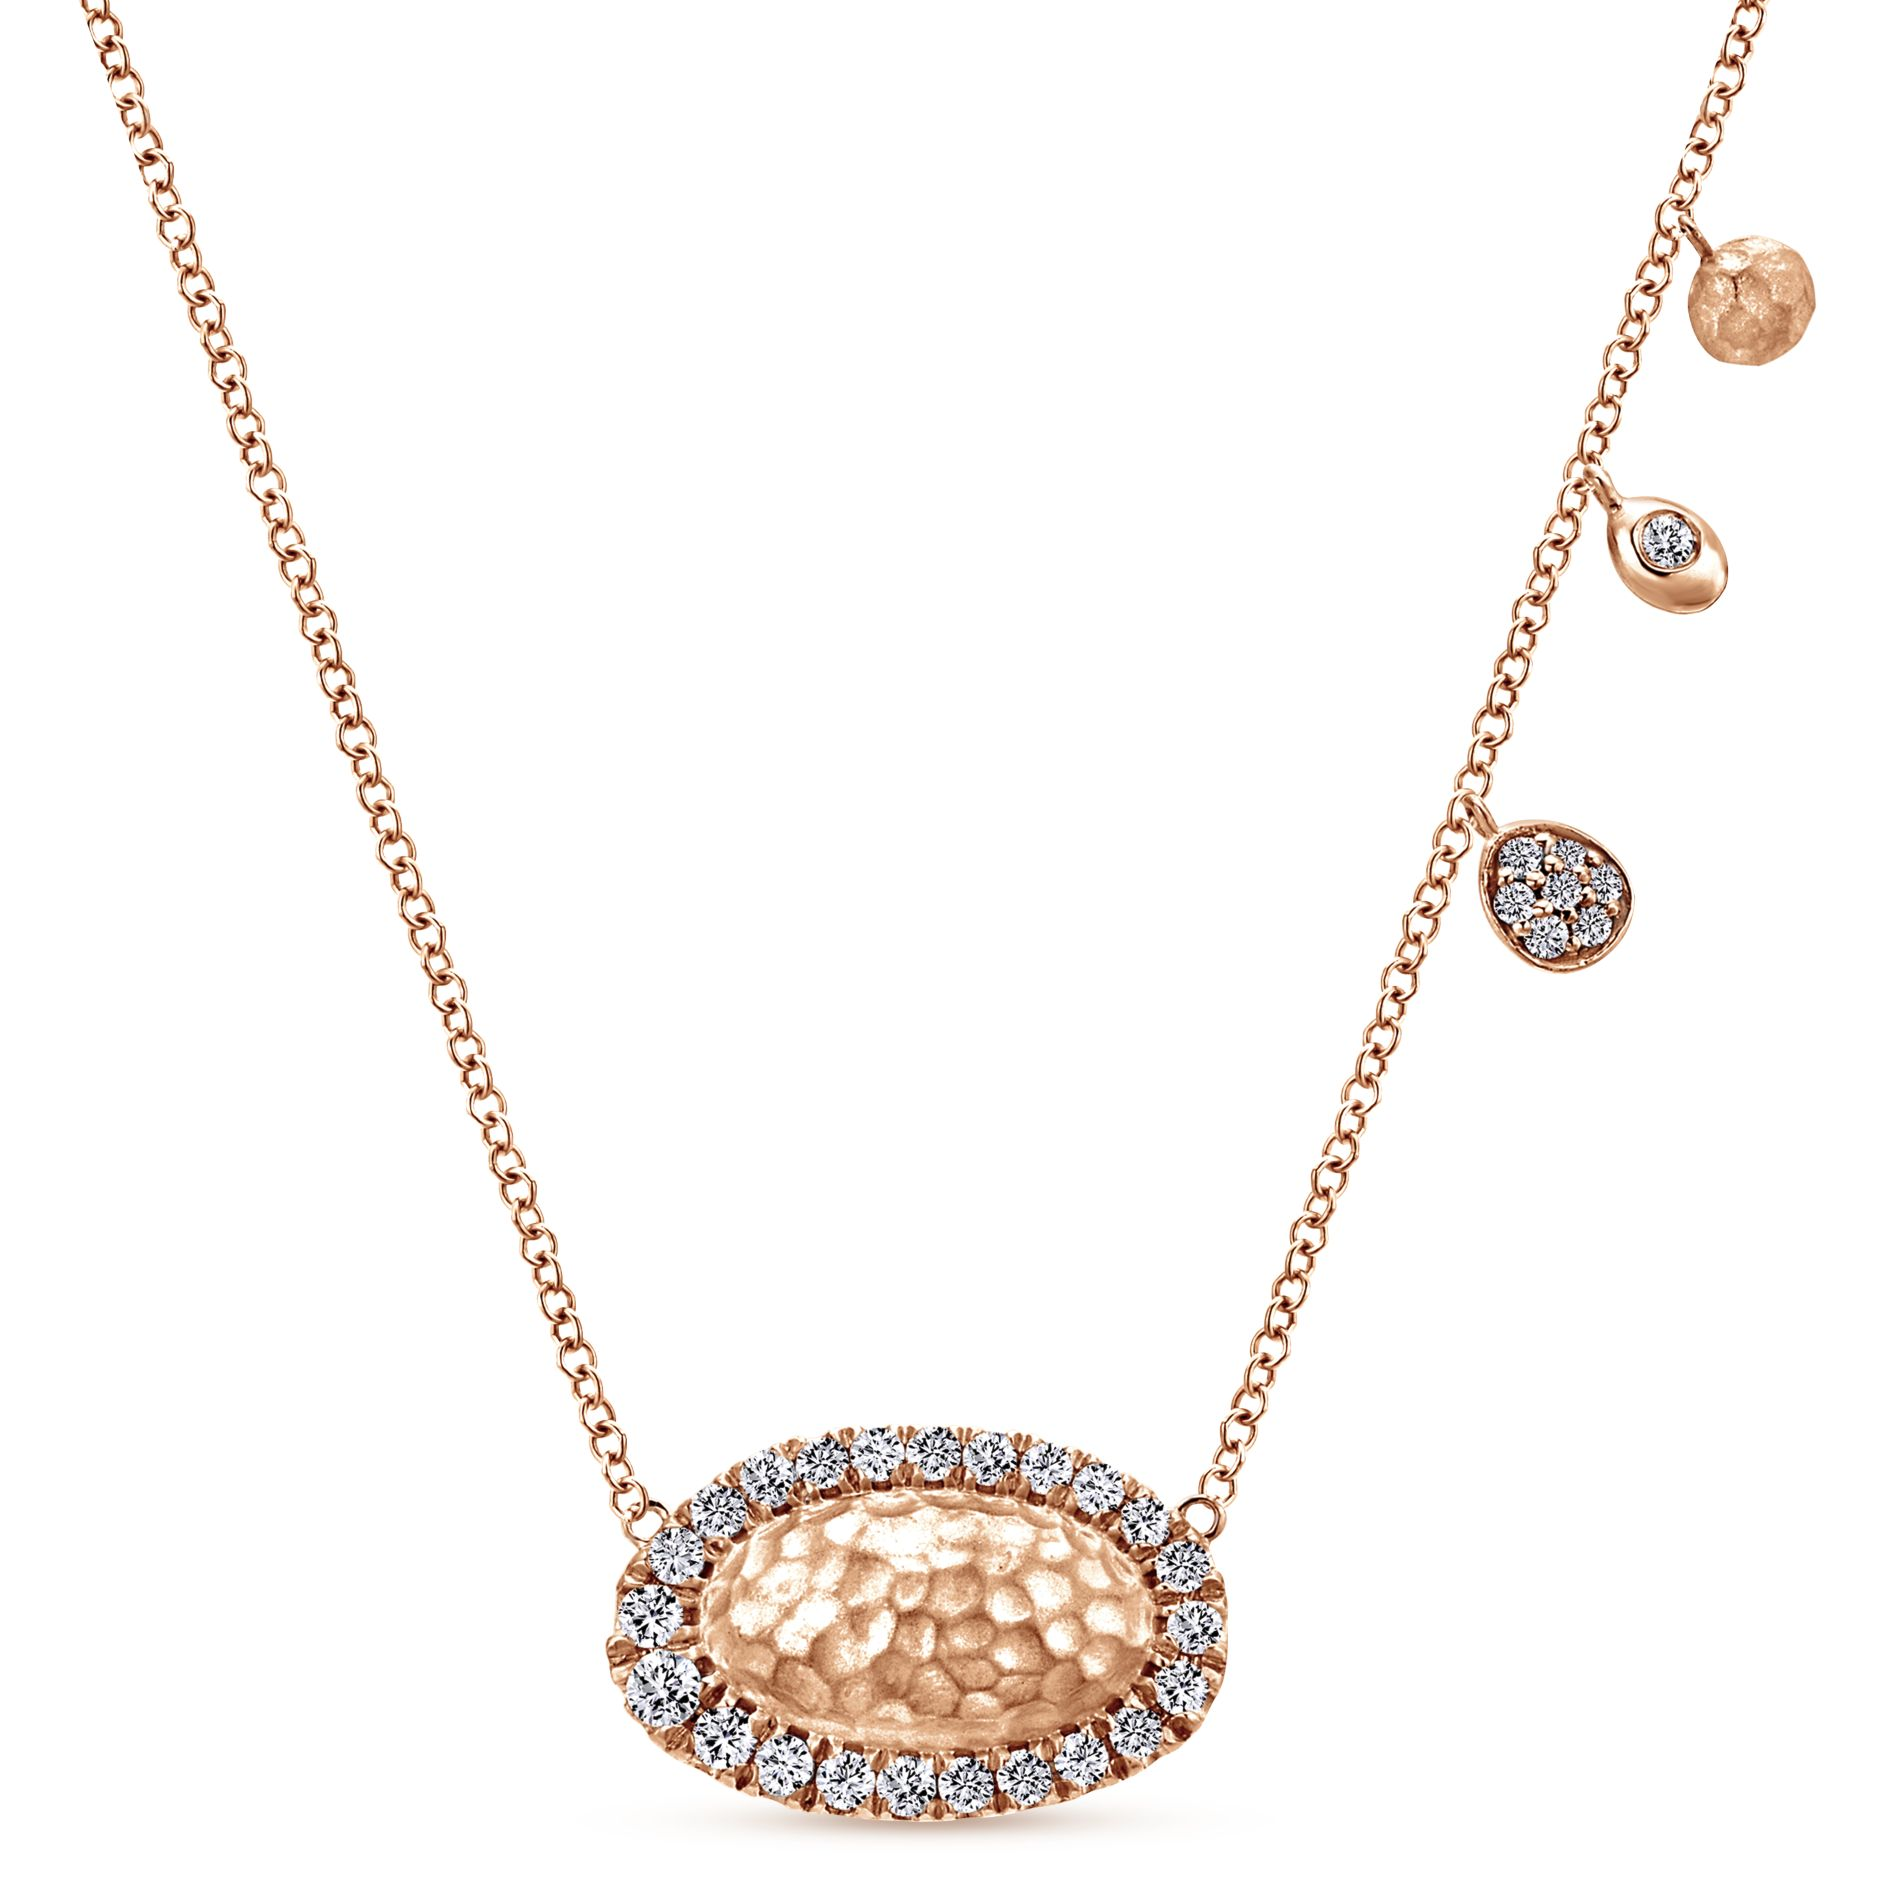 Necklaces - ROSE GOLD FASHION DIAMOND NECKLACE